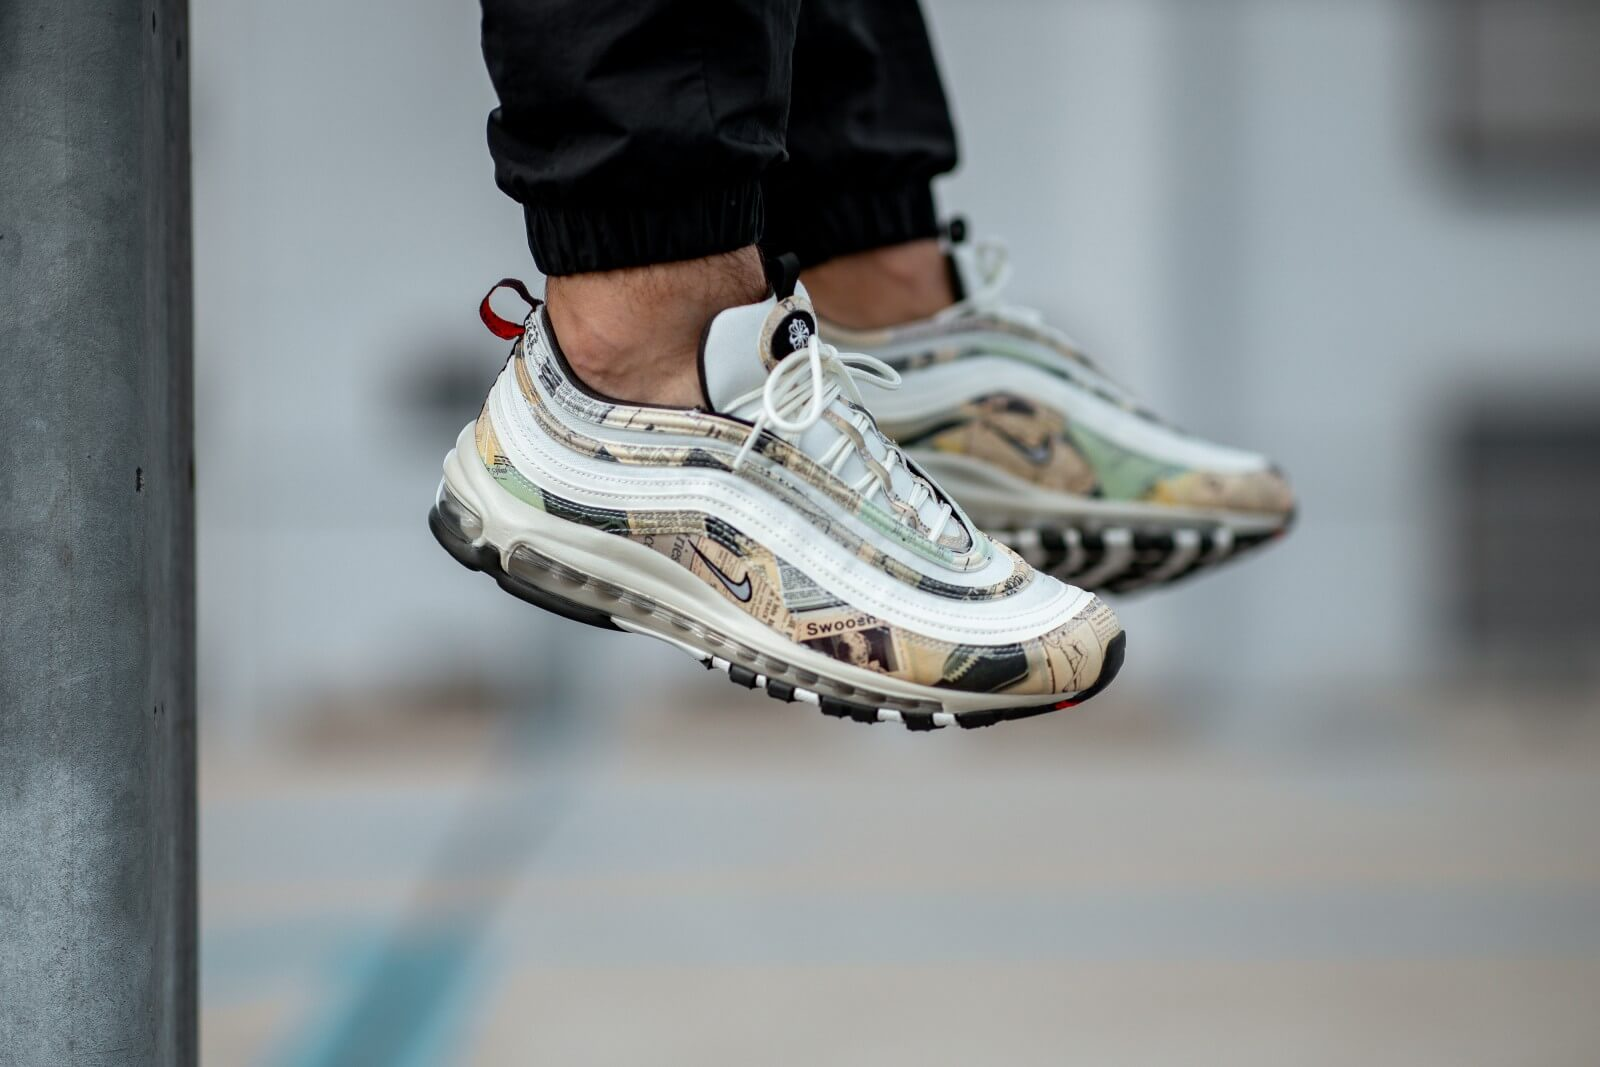 Nike Air Max 97 Sail/White-Black - 921826-108